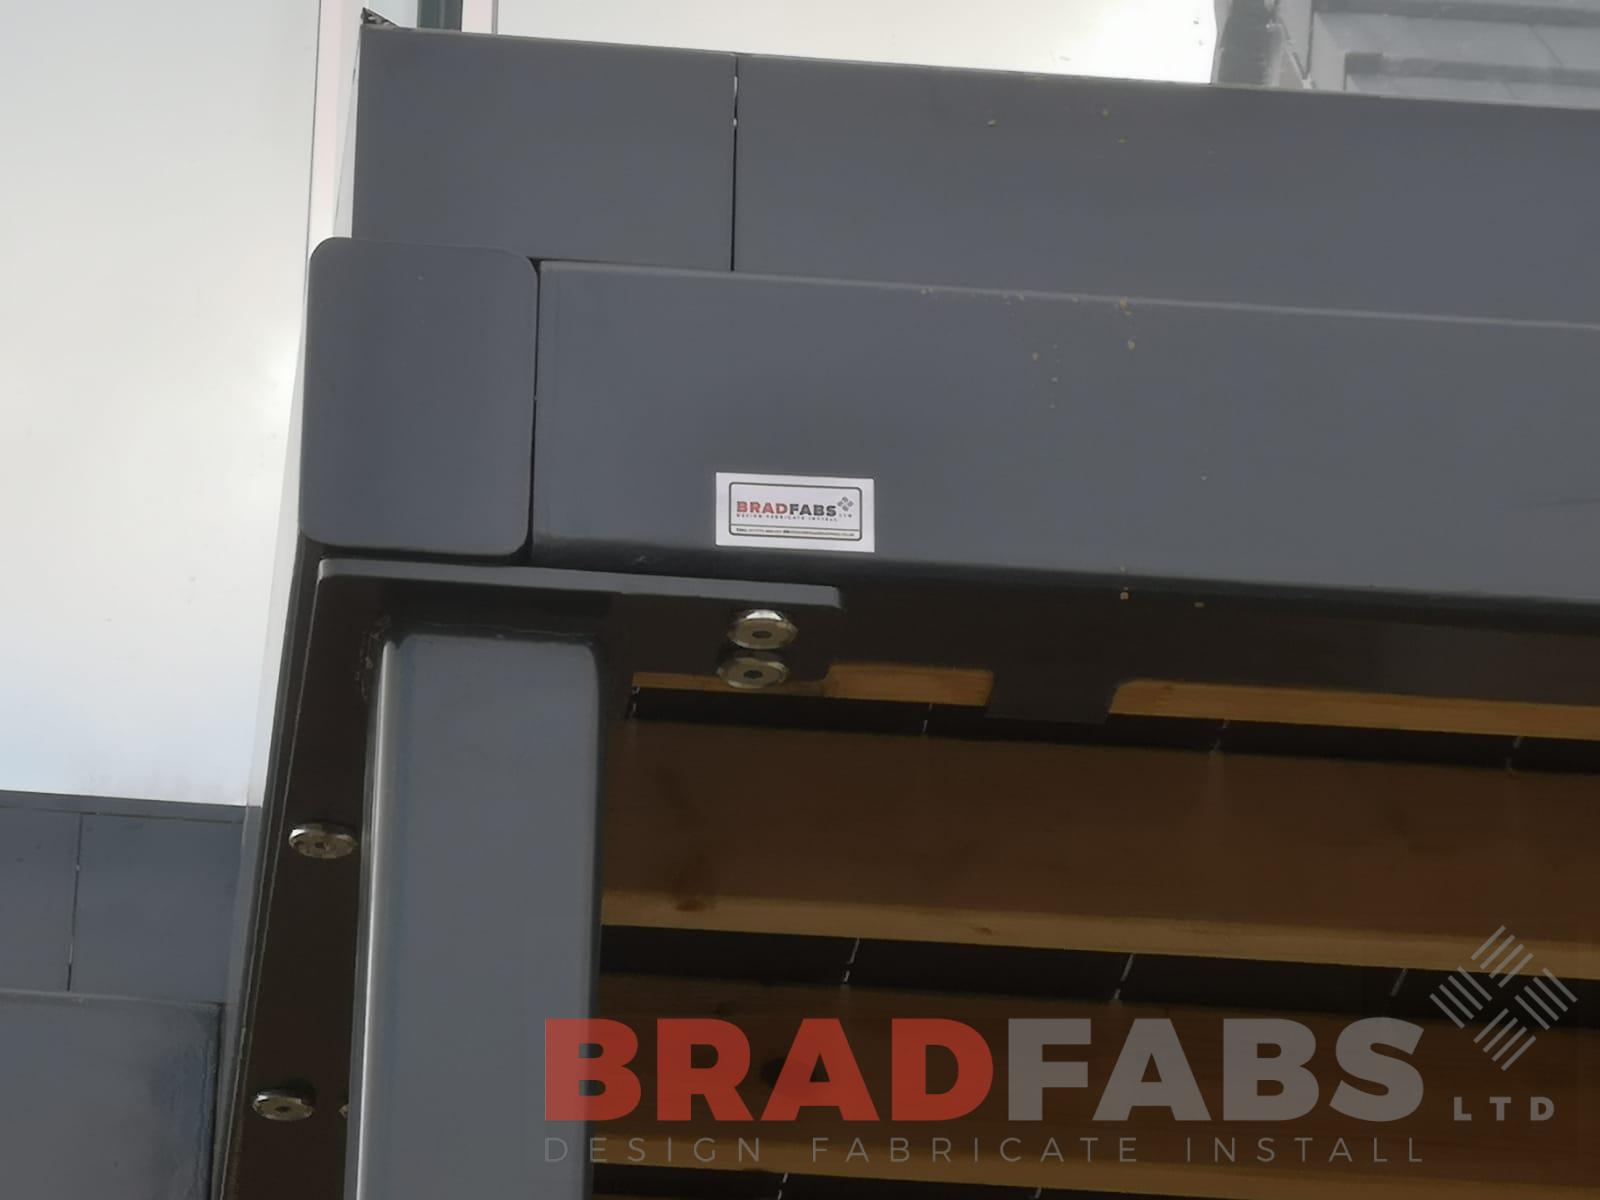 every detail of the work done by Bradfabs is with a professional finish